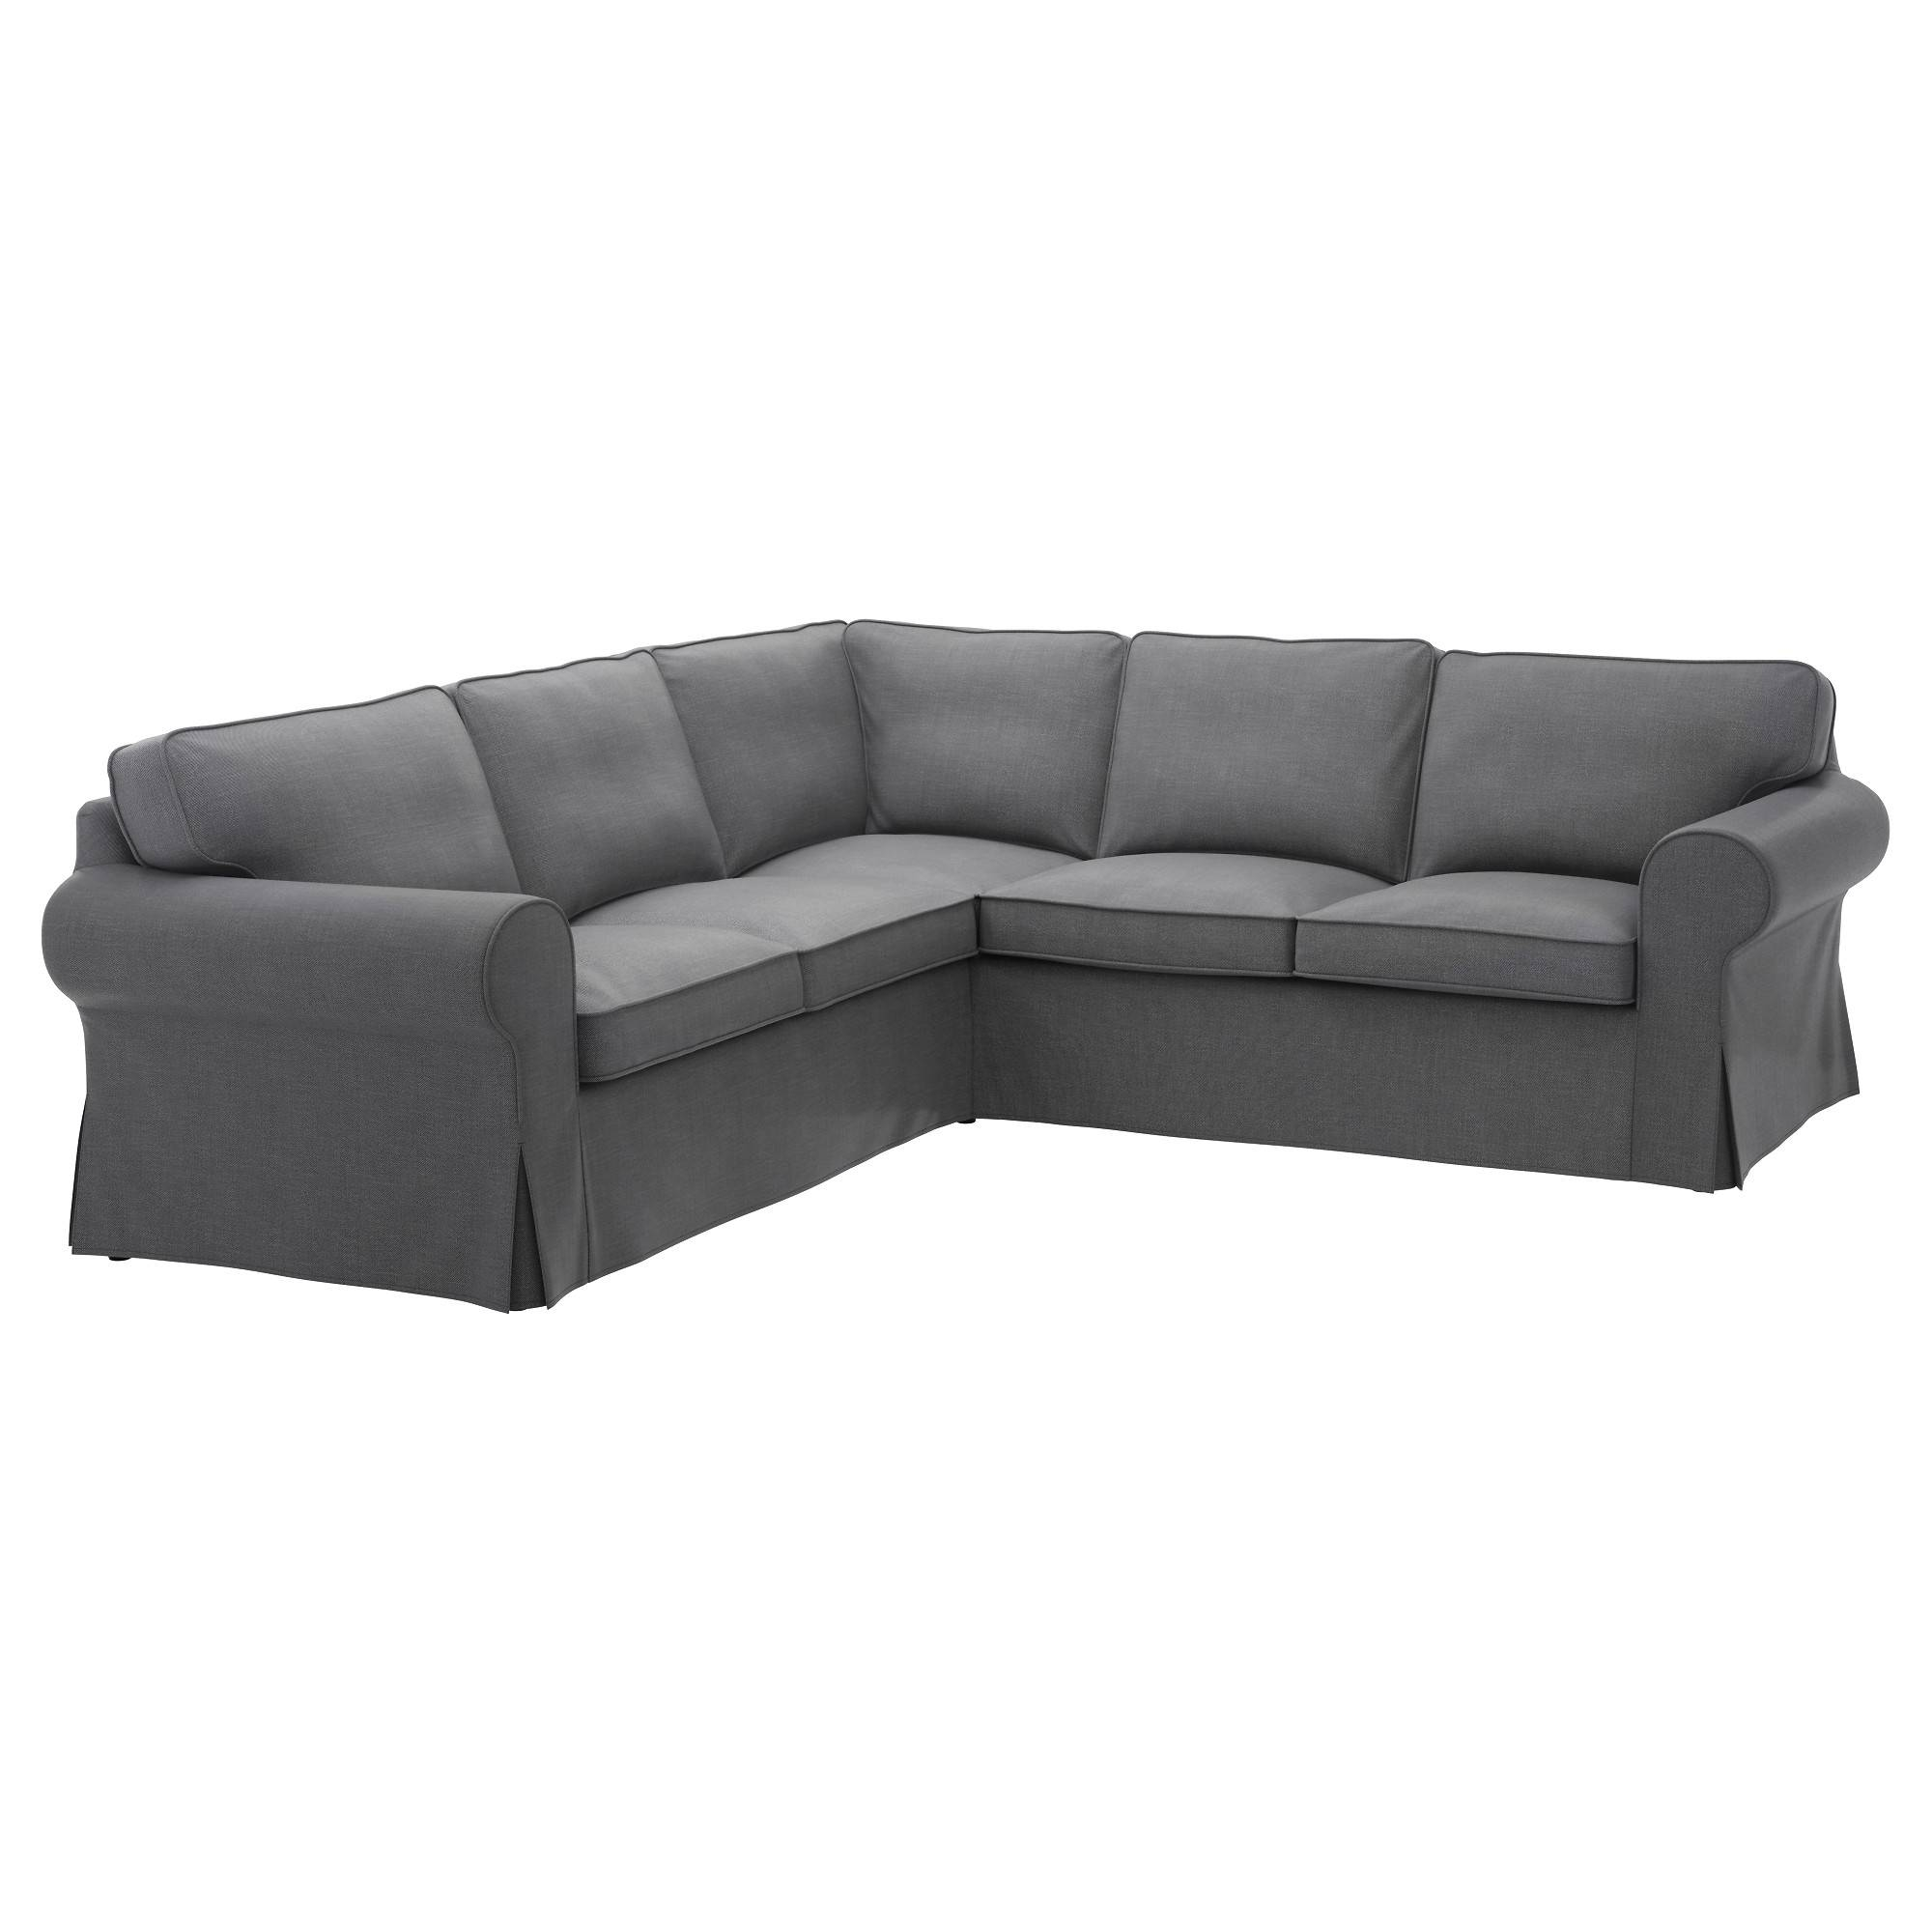 Fabric Sectional Sofas - Ikea in Sofa Corner Units (Image 8 of 30)